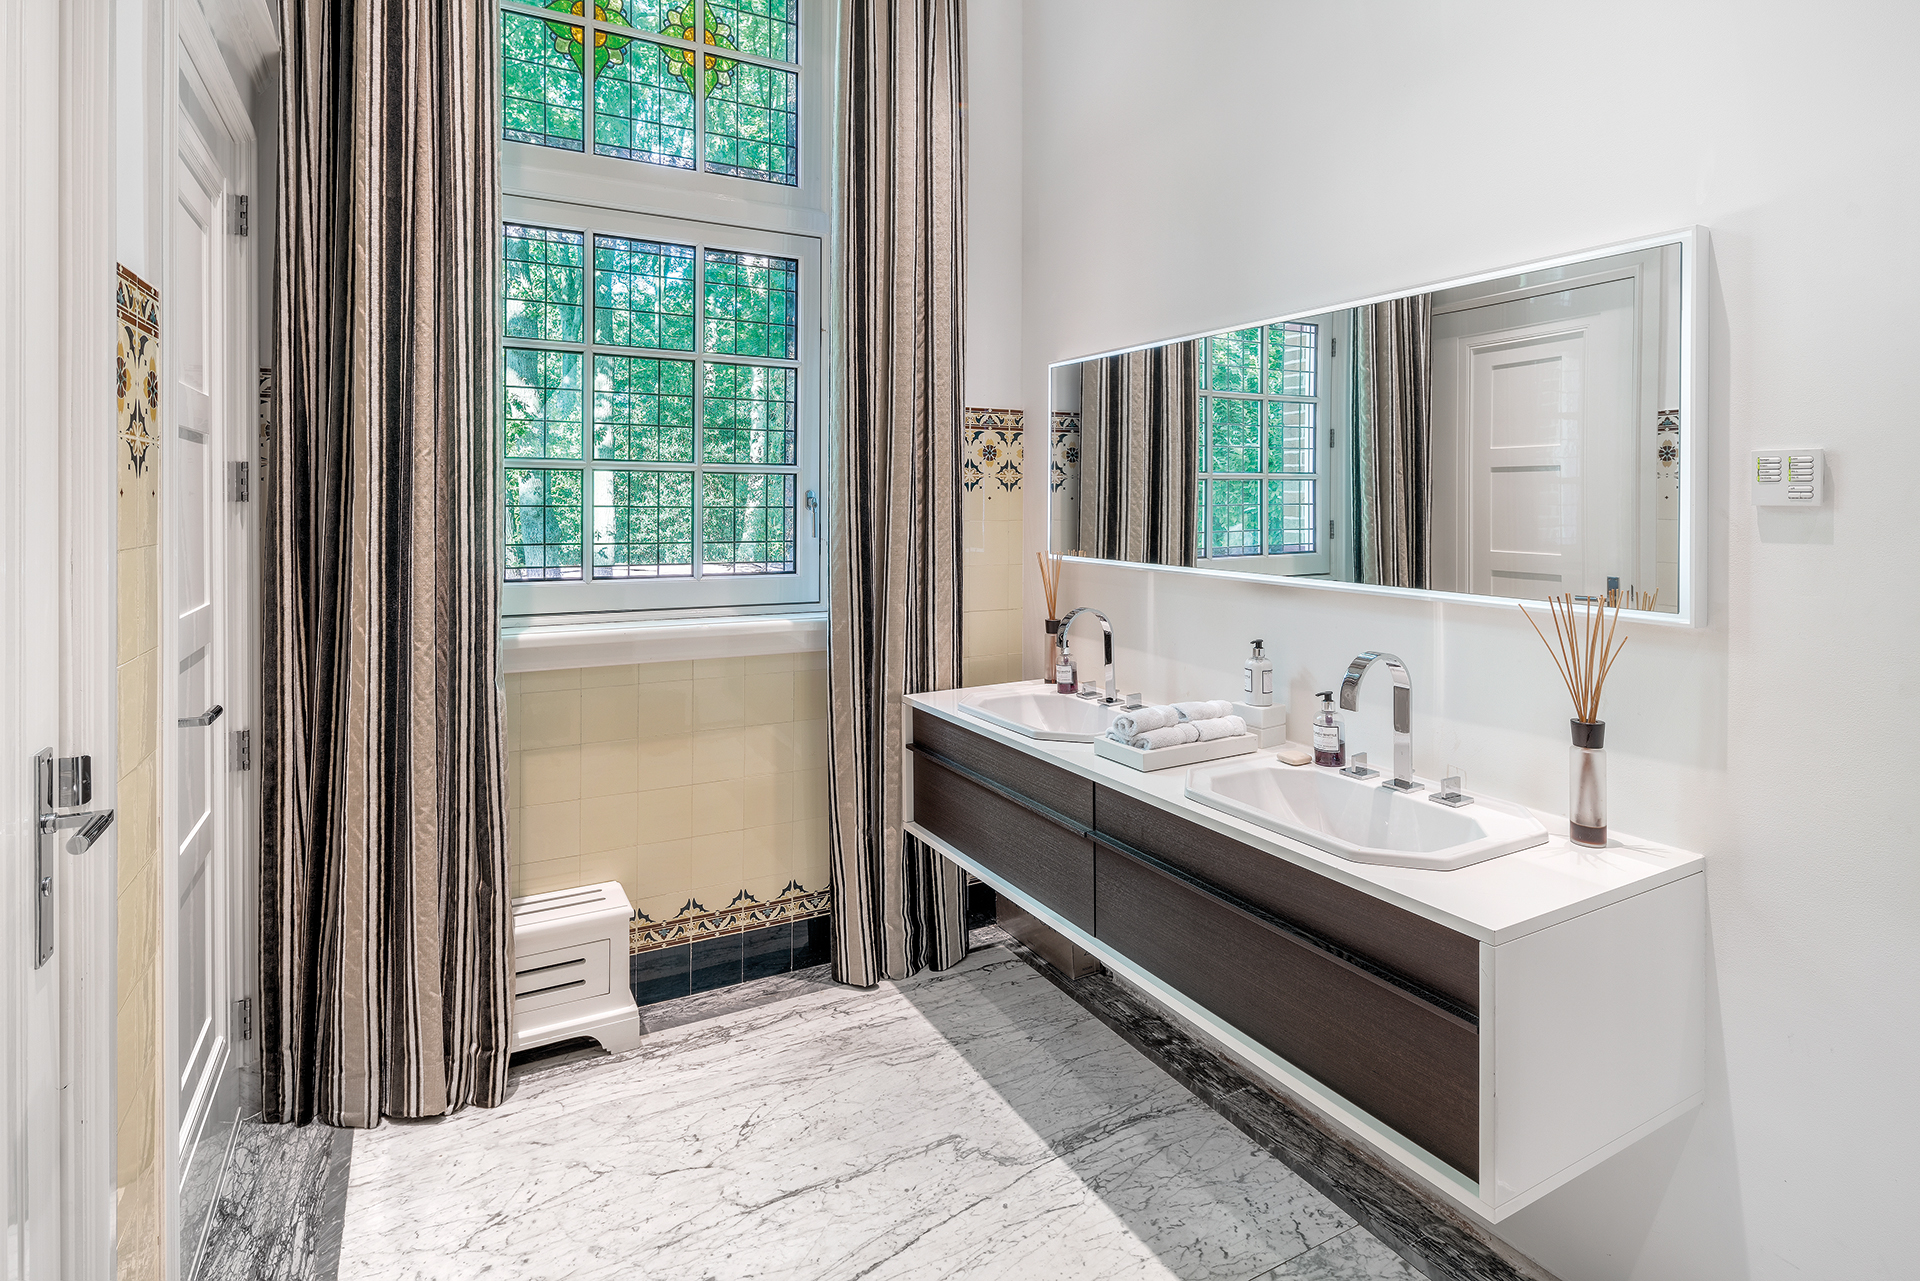 Restroom with marble floors and stained glass window the sink is wide and hanging with a wide continueous square mirror above